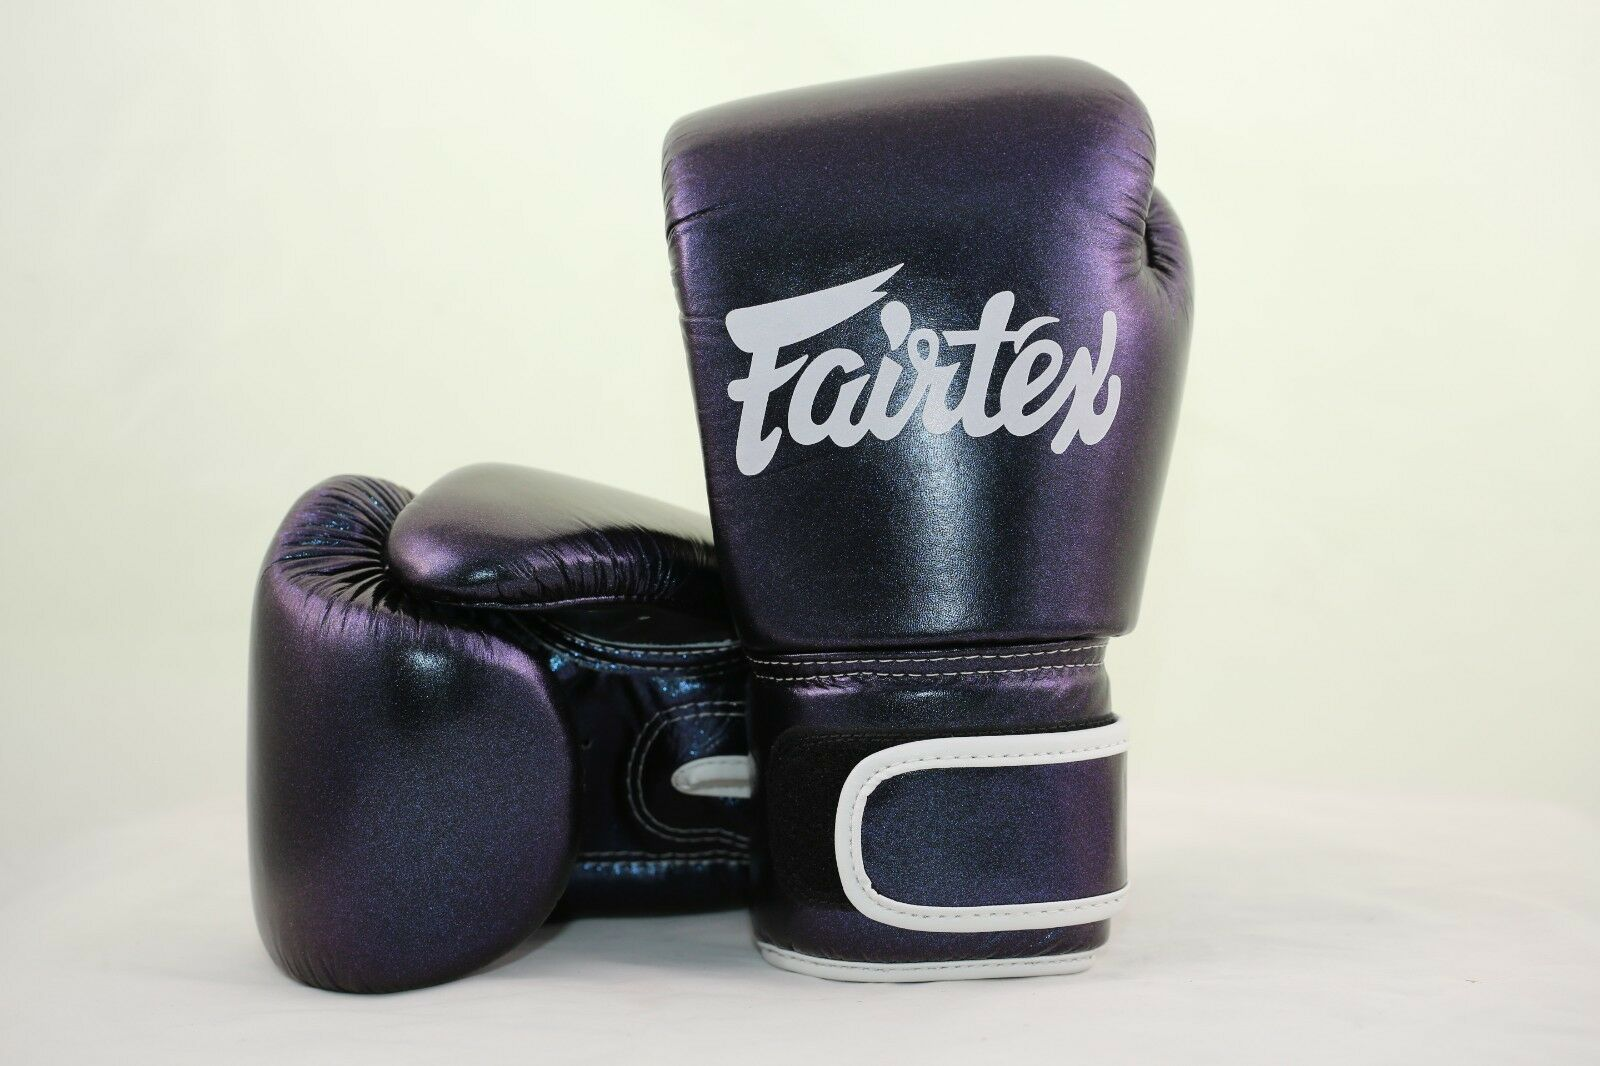 Fairtex BGV12   Aura  Limited Edition Boxing G s  there are more brands of high-quality goods